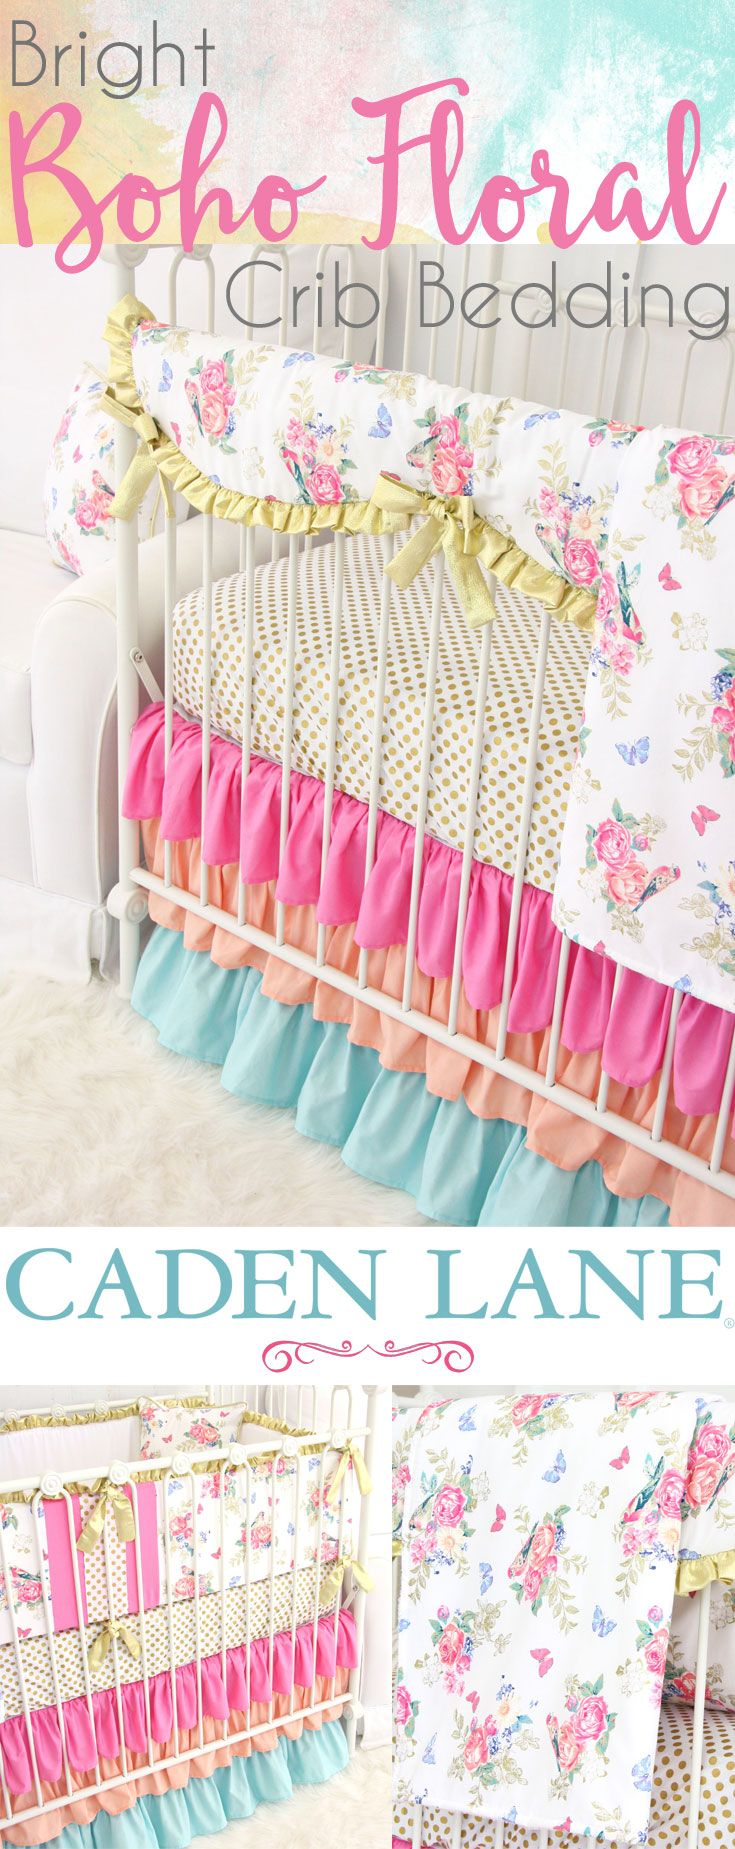 Baby crib gertie - Go Bright With Olivia S Bright Boho Floral Crib Bedding Collection From Caden Lane This Fun